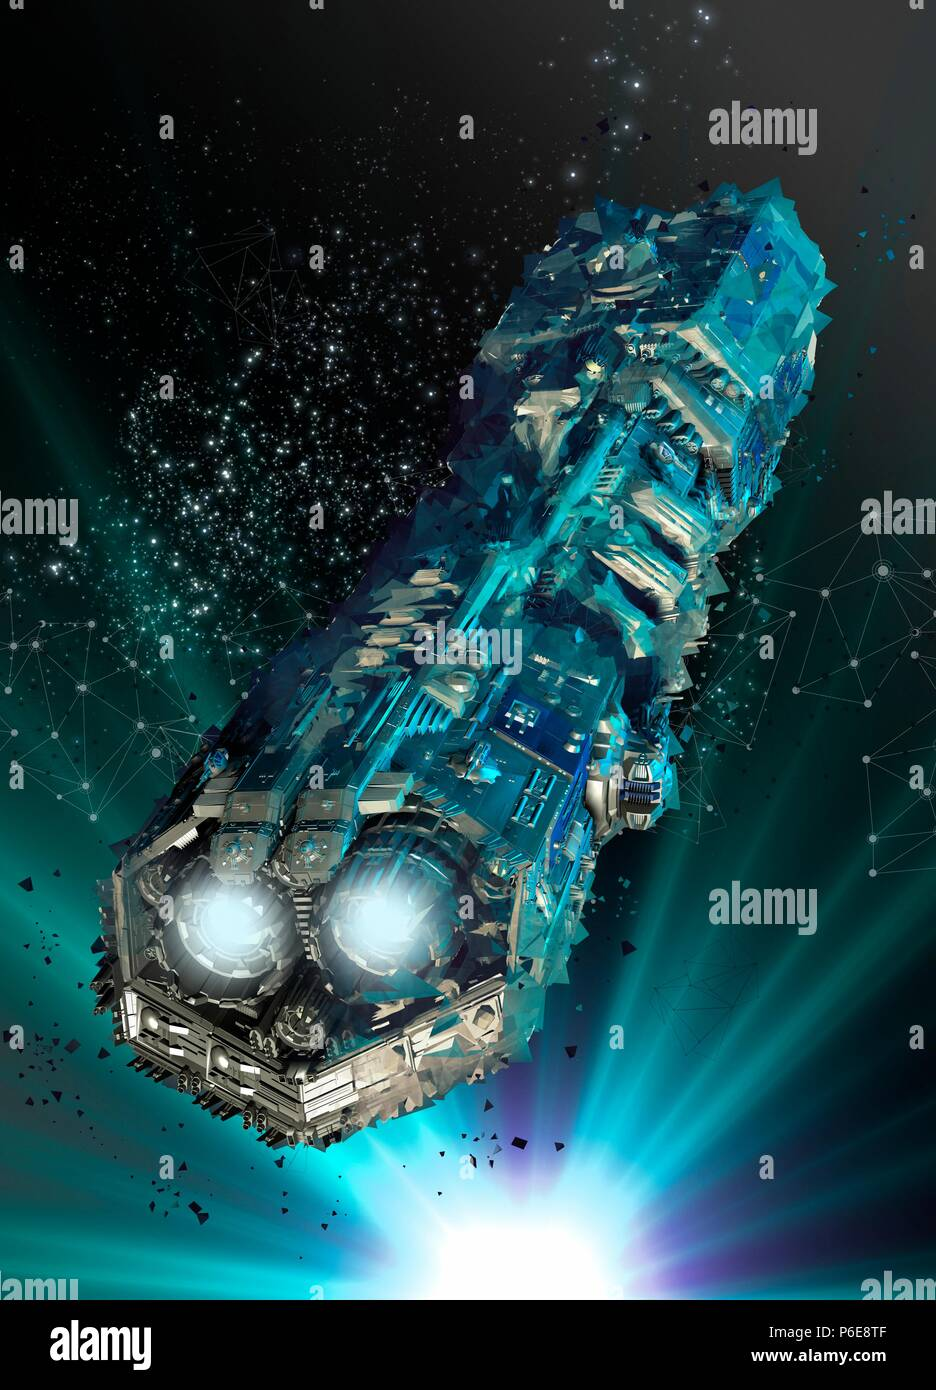 Spacecraft, illustration. - Stock Image